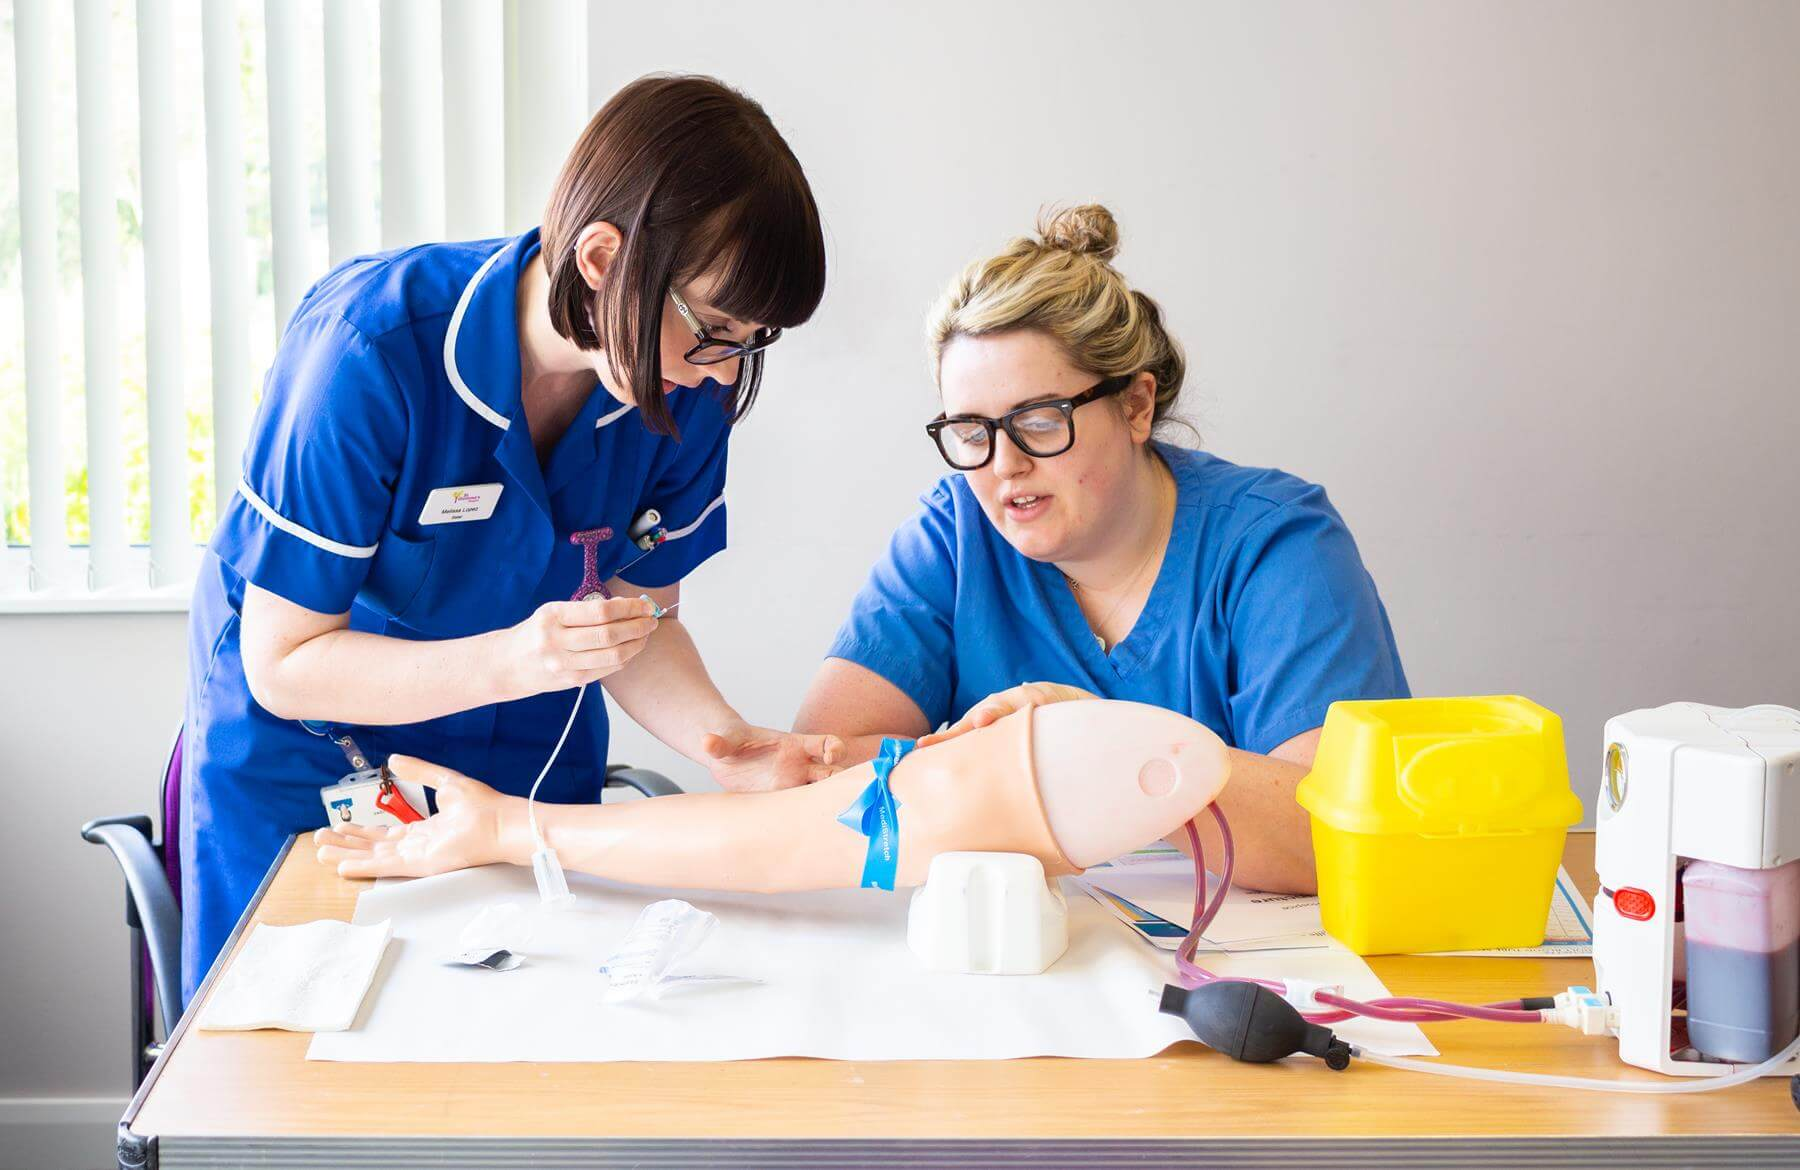 Two nurses in a training session